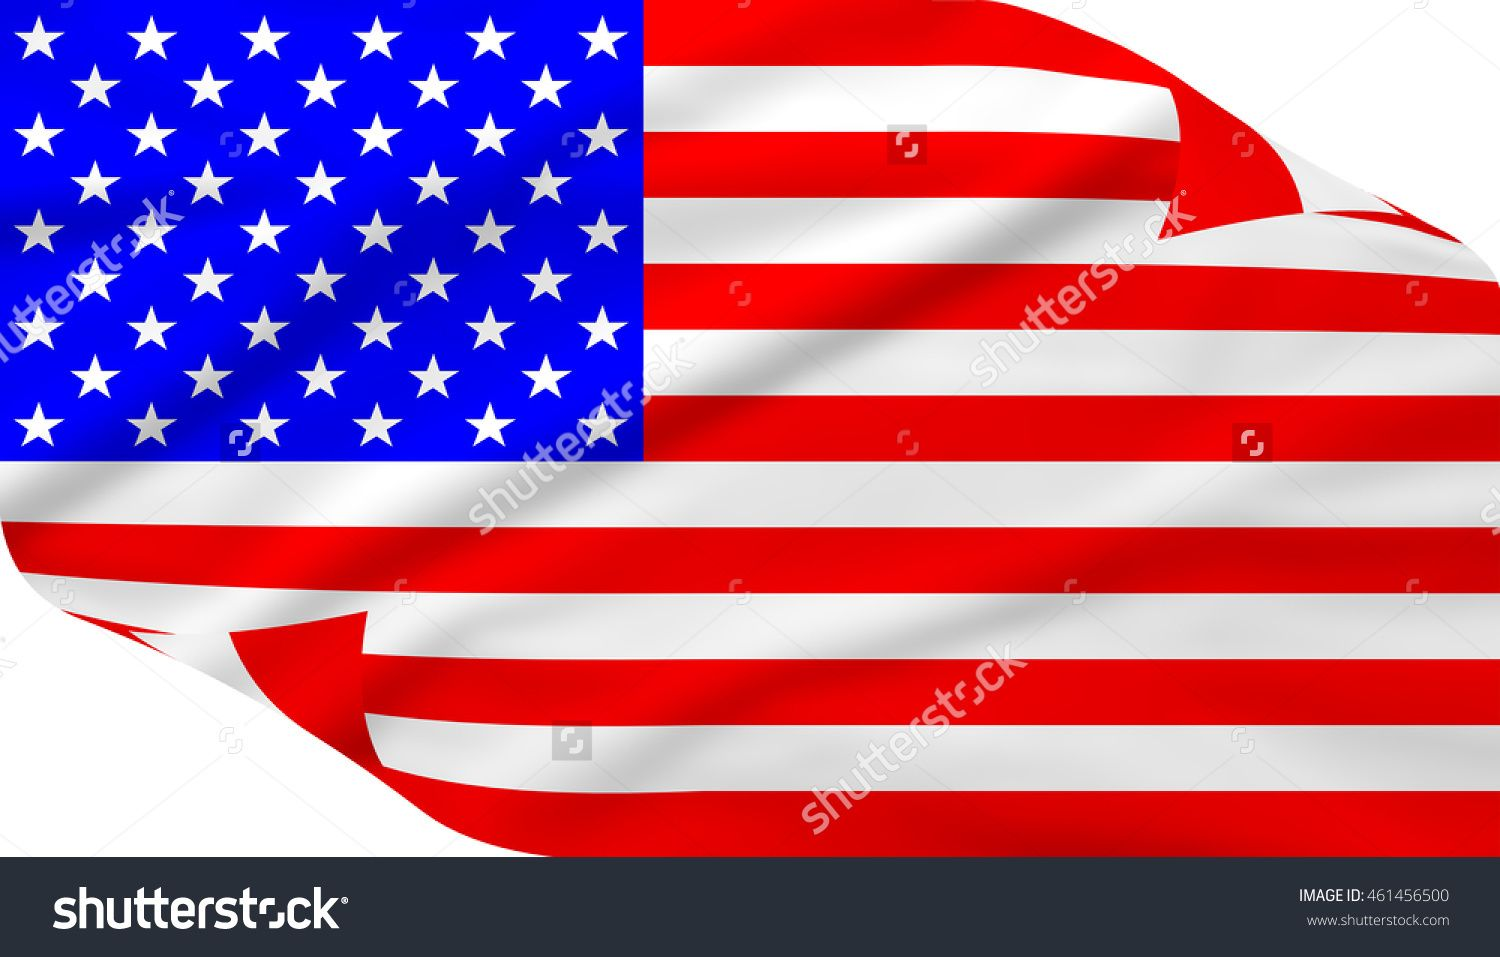 The Stars And Stripes Flag On White Background For United States Of America Stock Photo 461456500 Shutterstock